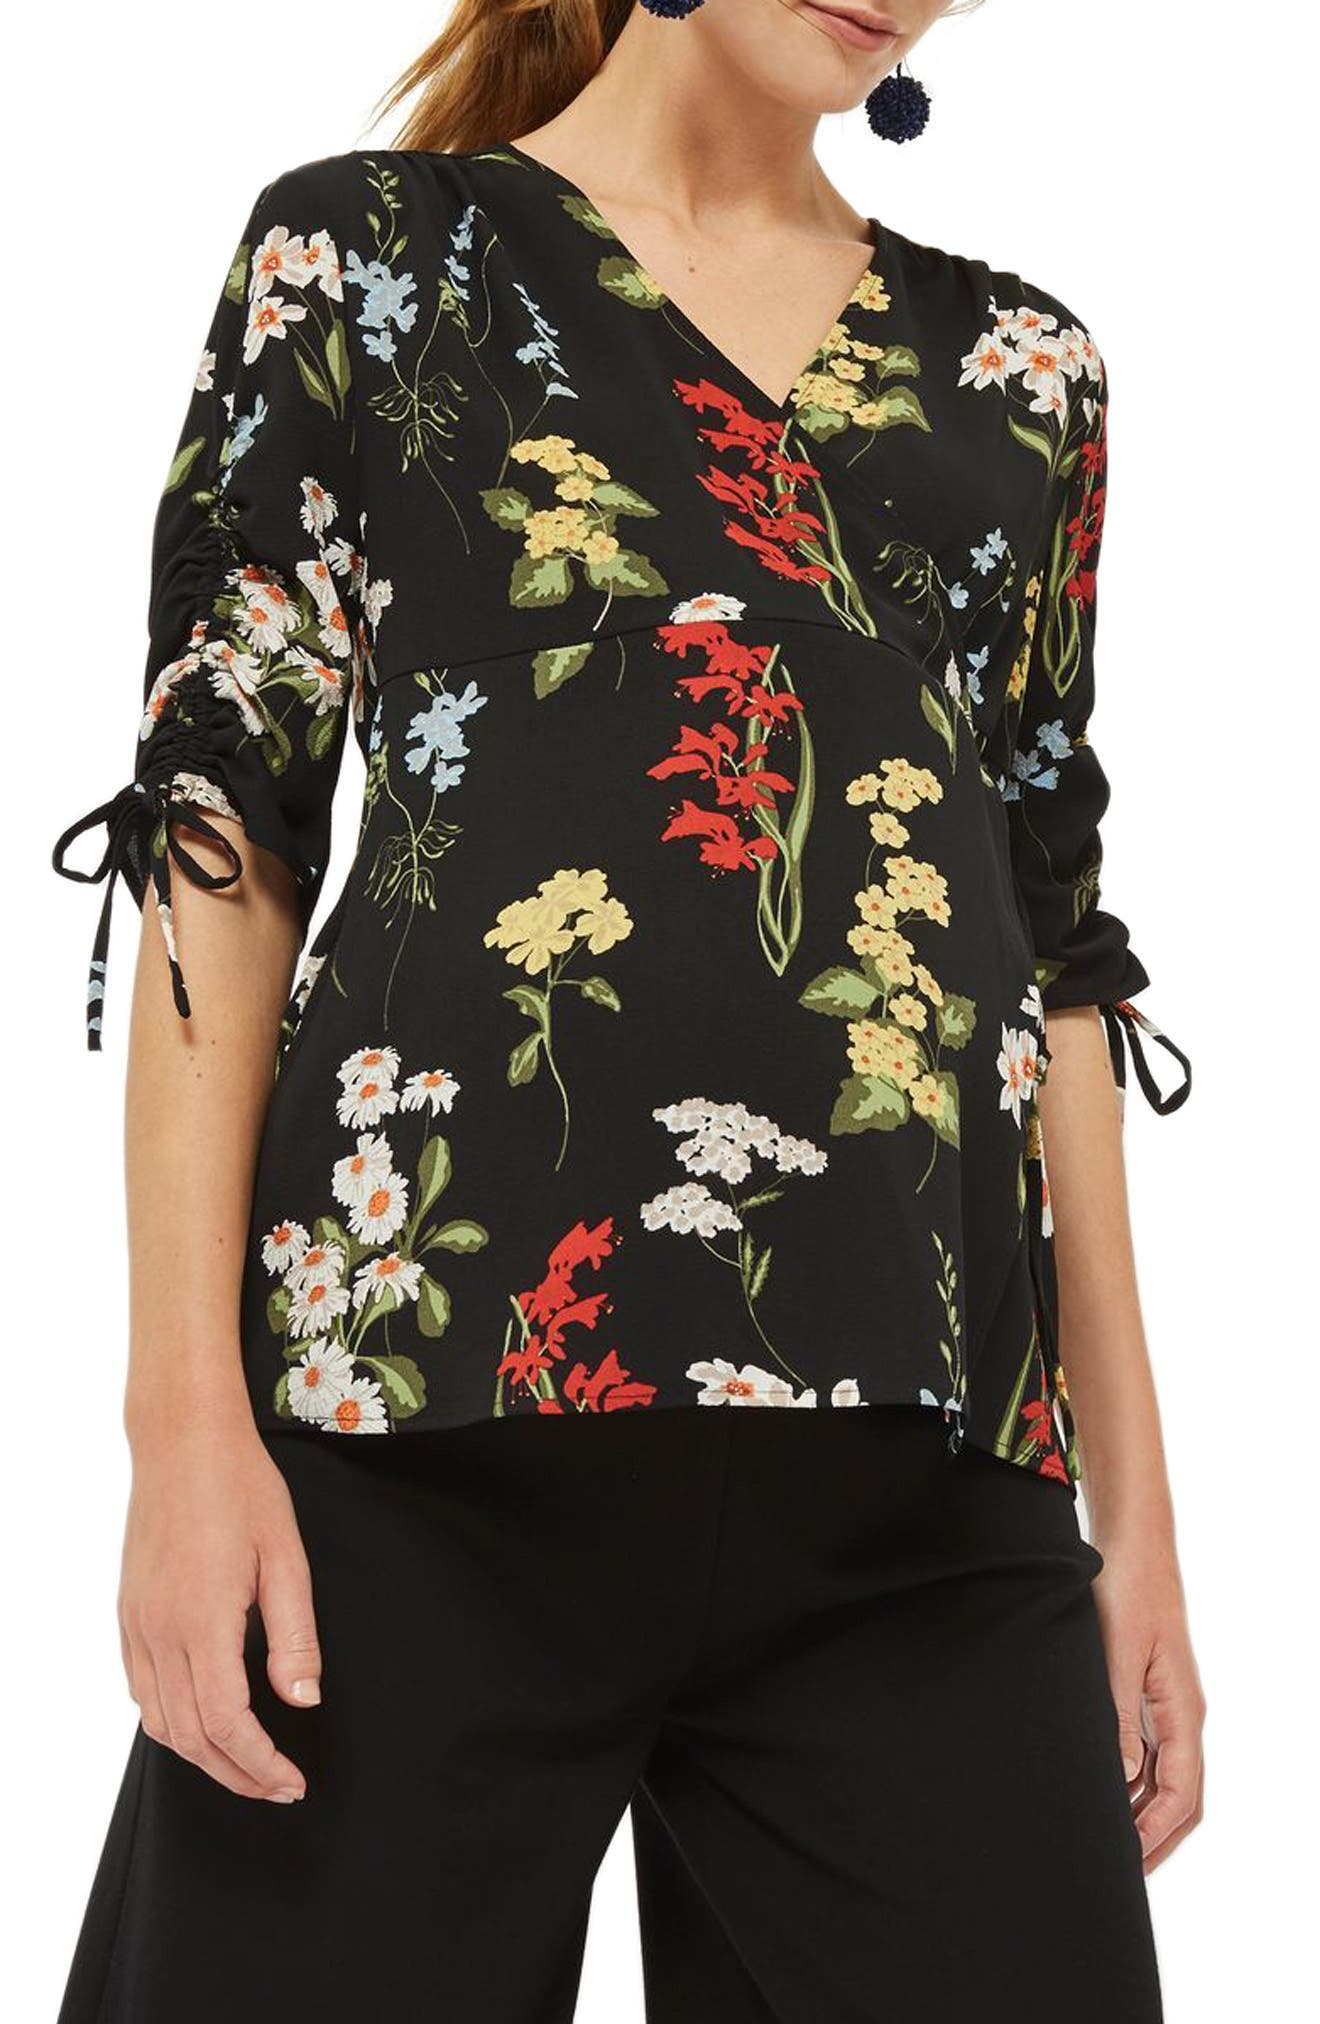 Floral Ruched Sleeve Wrap Maternity Blouse,                             Main thumbnail 1, color,                             Navy Blue Multi